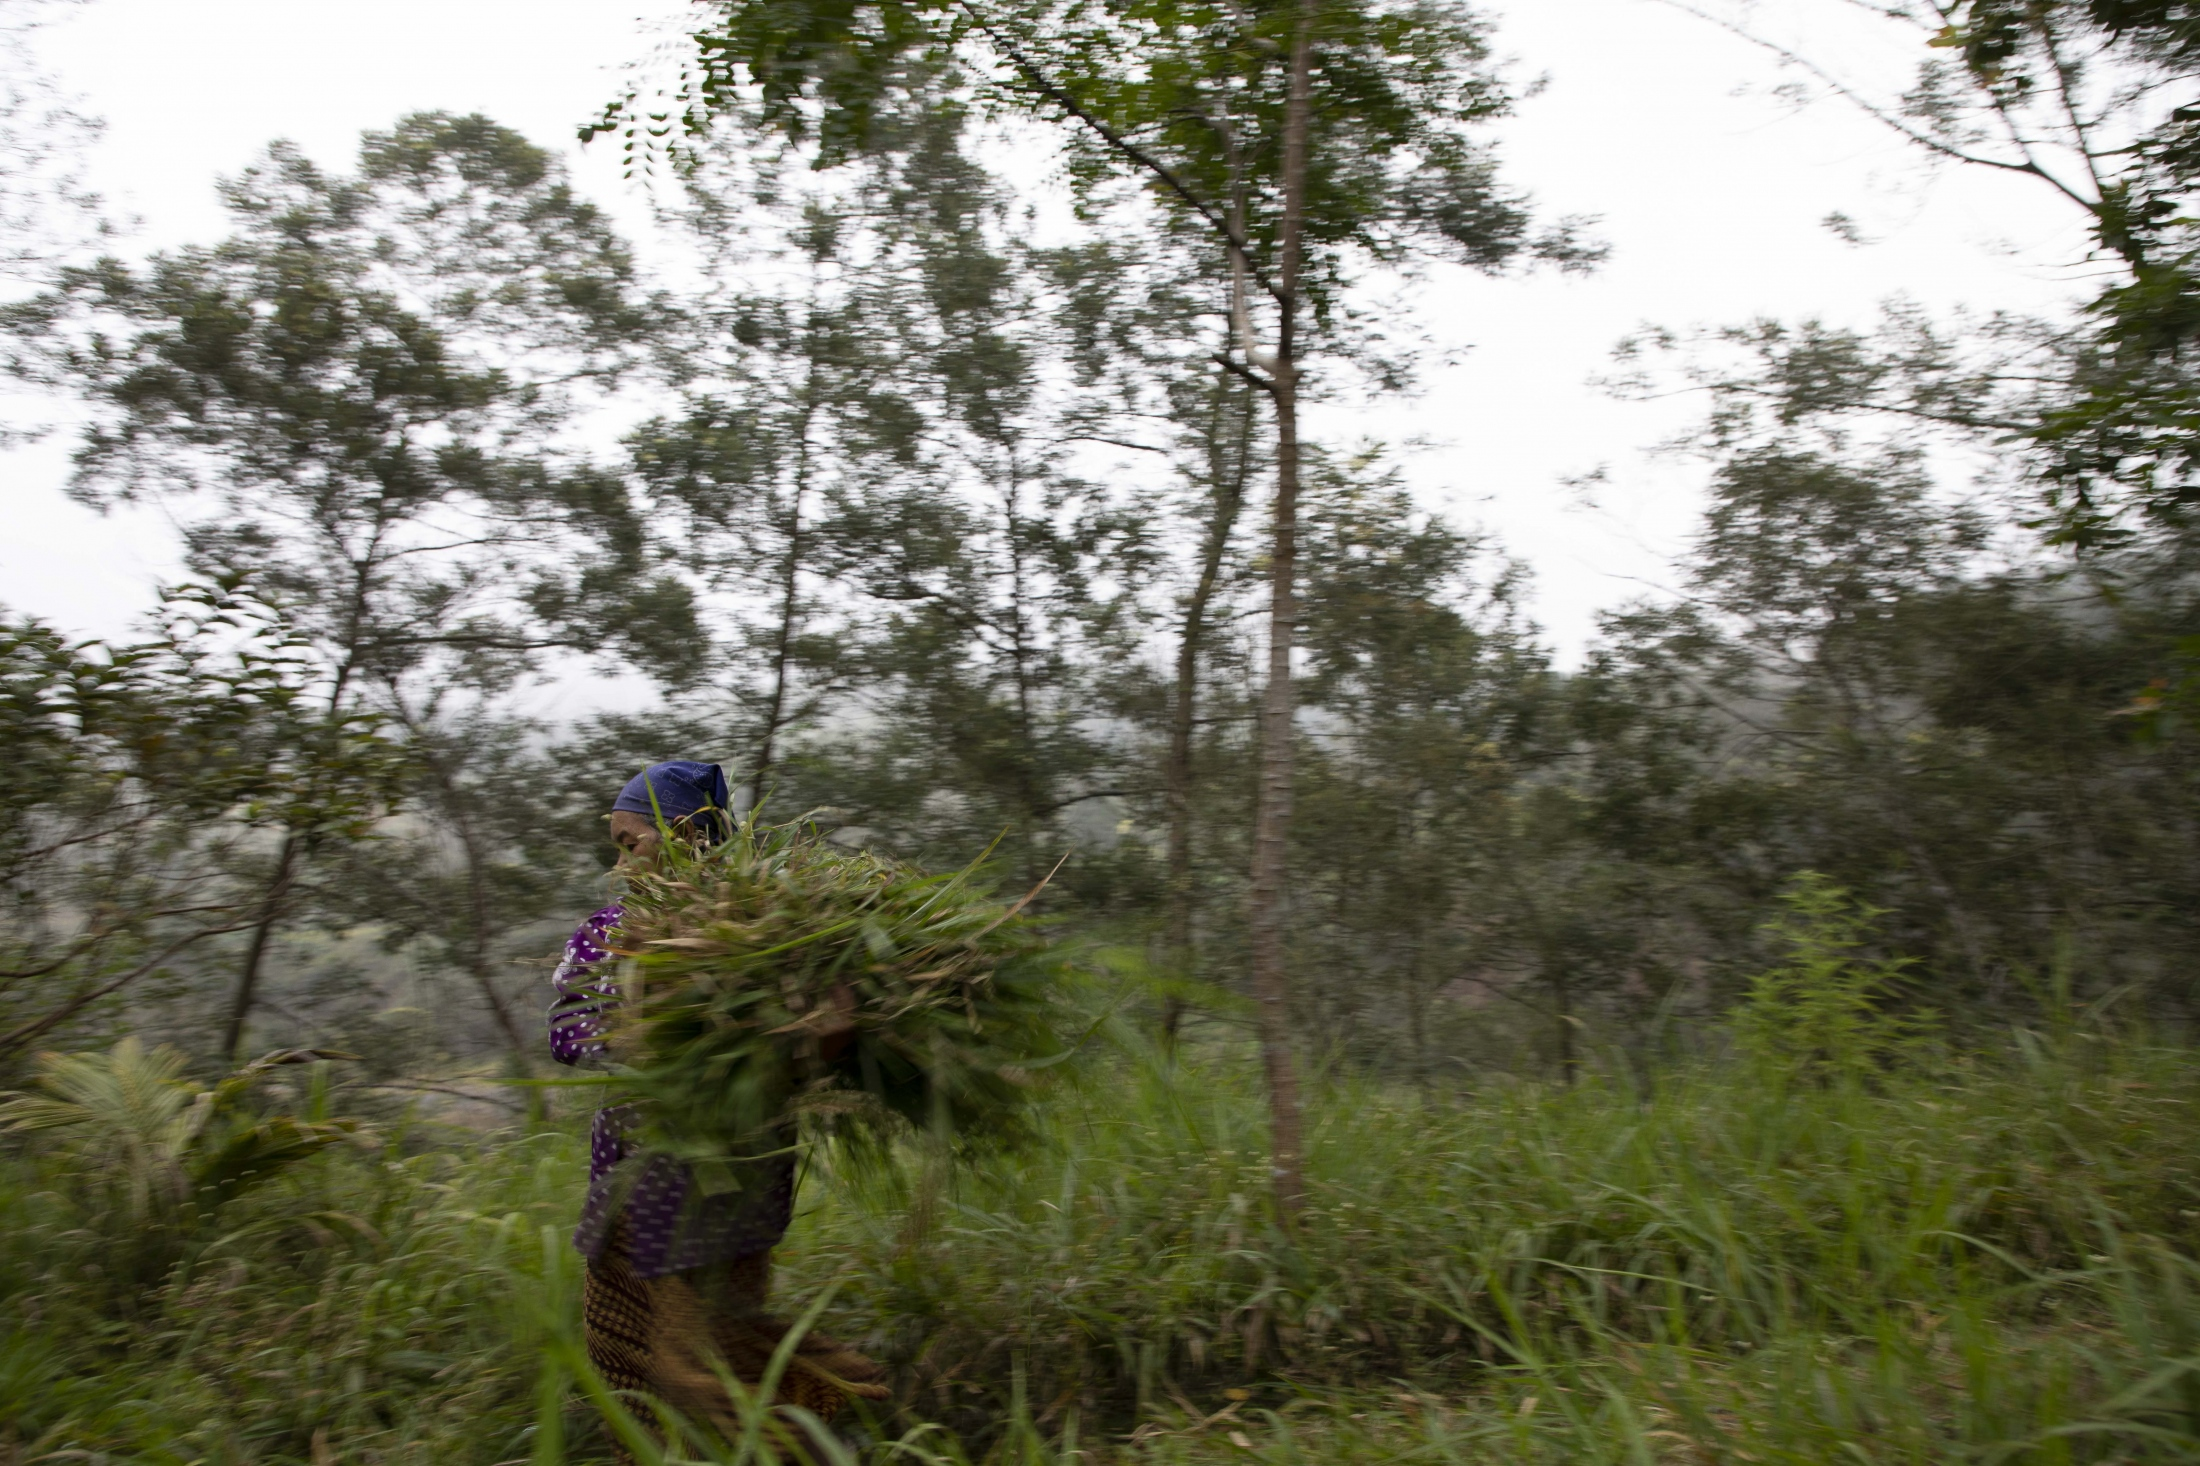 Mbah Sudiwiyono collecting fresh cress to prepare the wood coal fire early in the morning. She does so barefoot to be even closer to nature. The forest of the mountain is her home. Most women use the forests around their villages to make a living by collecting wood, or grass, mostly for livestock.